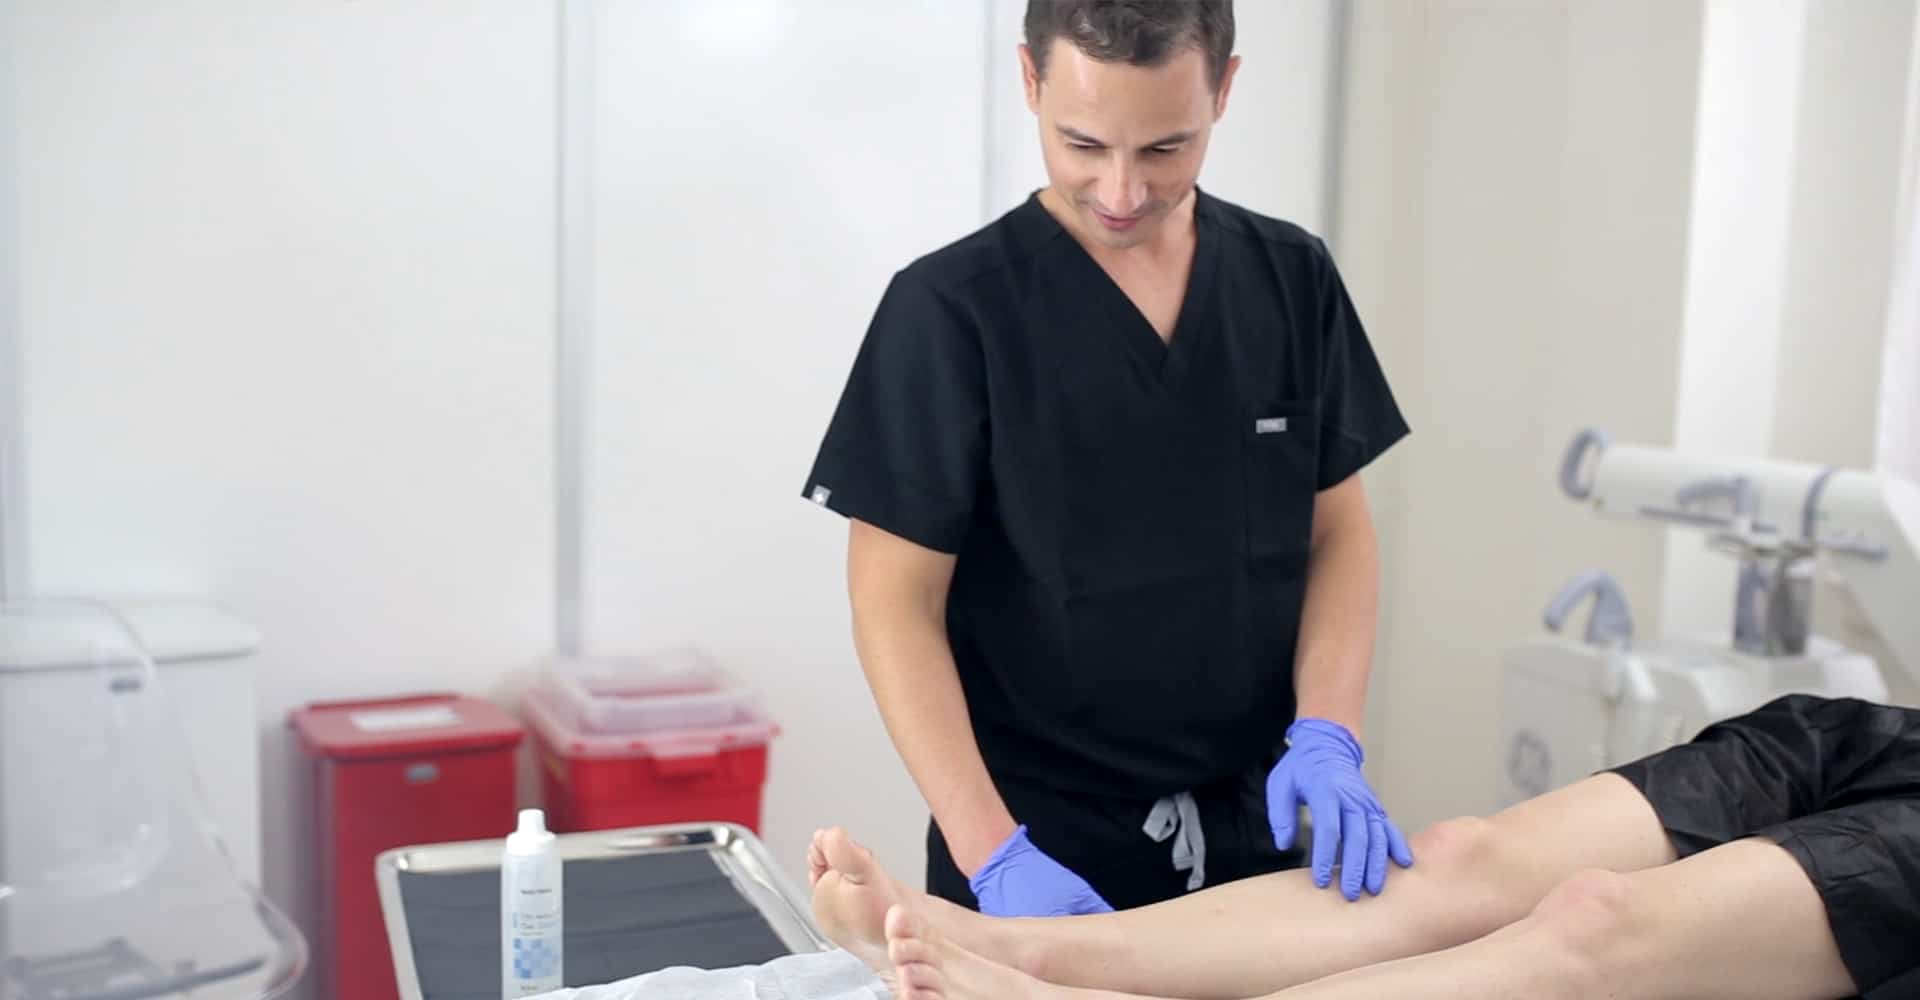 Do you have questions about vein disease or vein treatments? In this article, the top vein doctor in NY answers frequently asked questions about minimally invasive treatments.